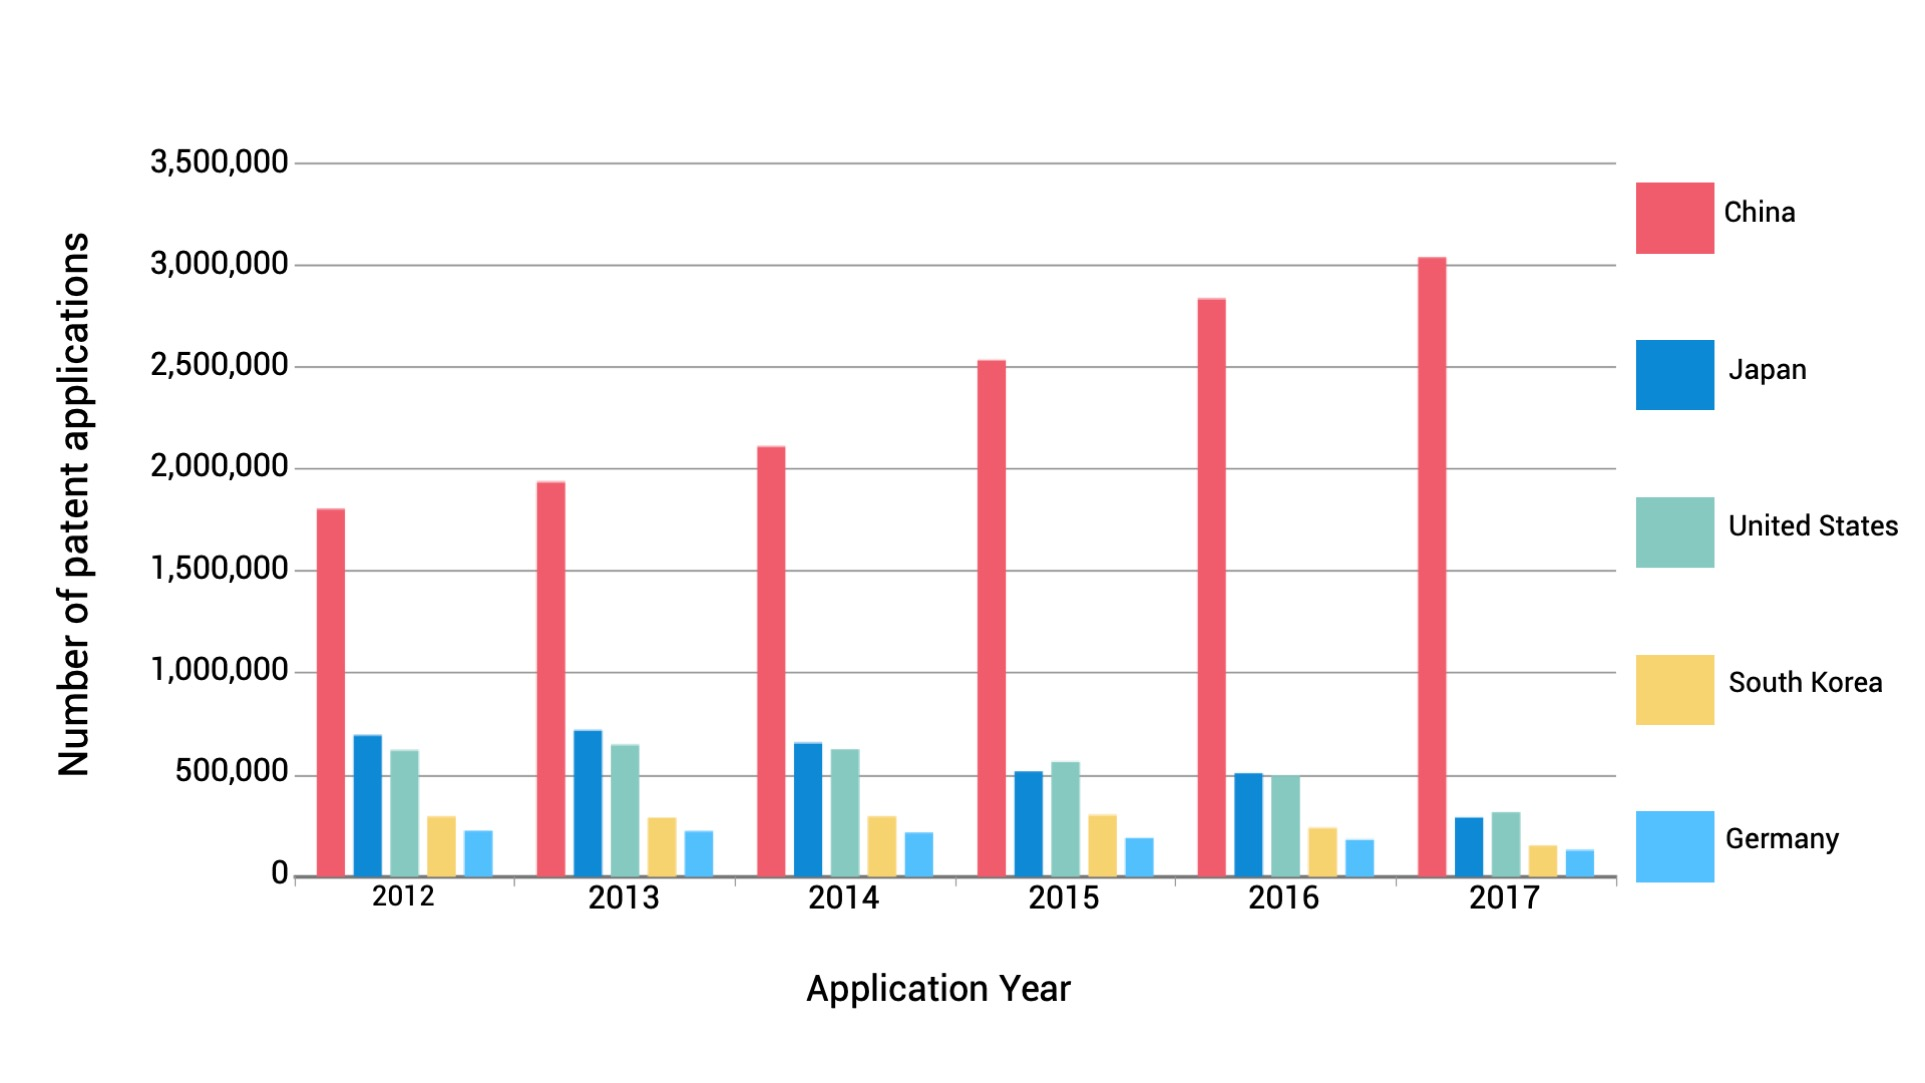 Global Patent Applications to 2017